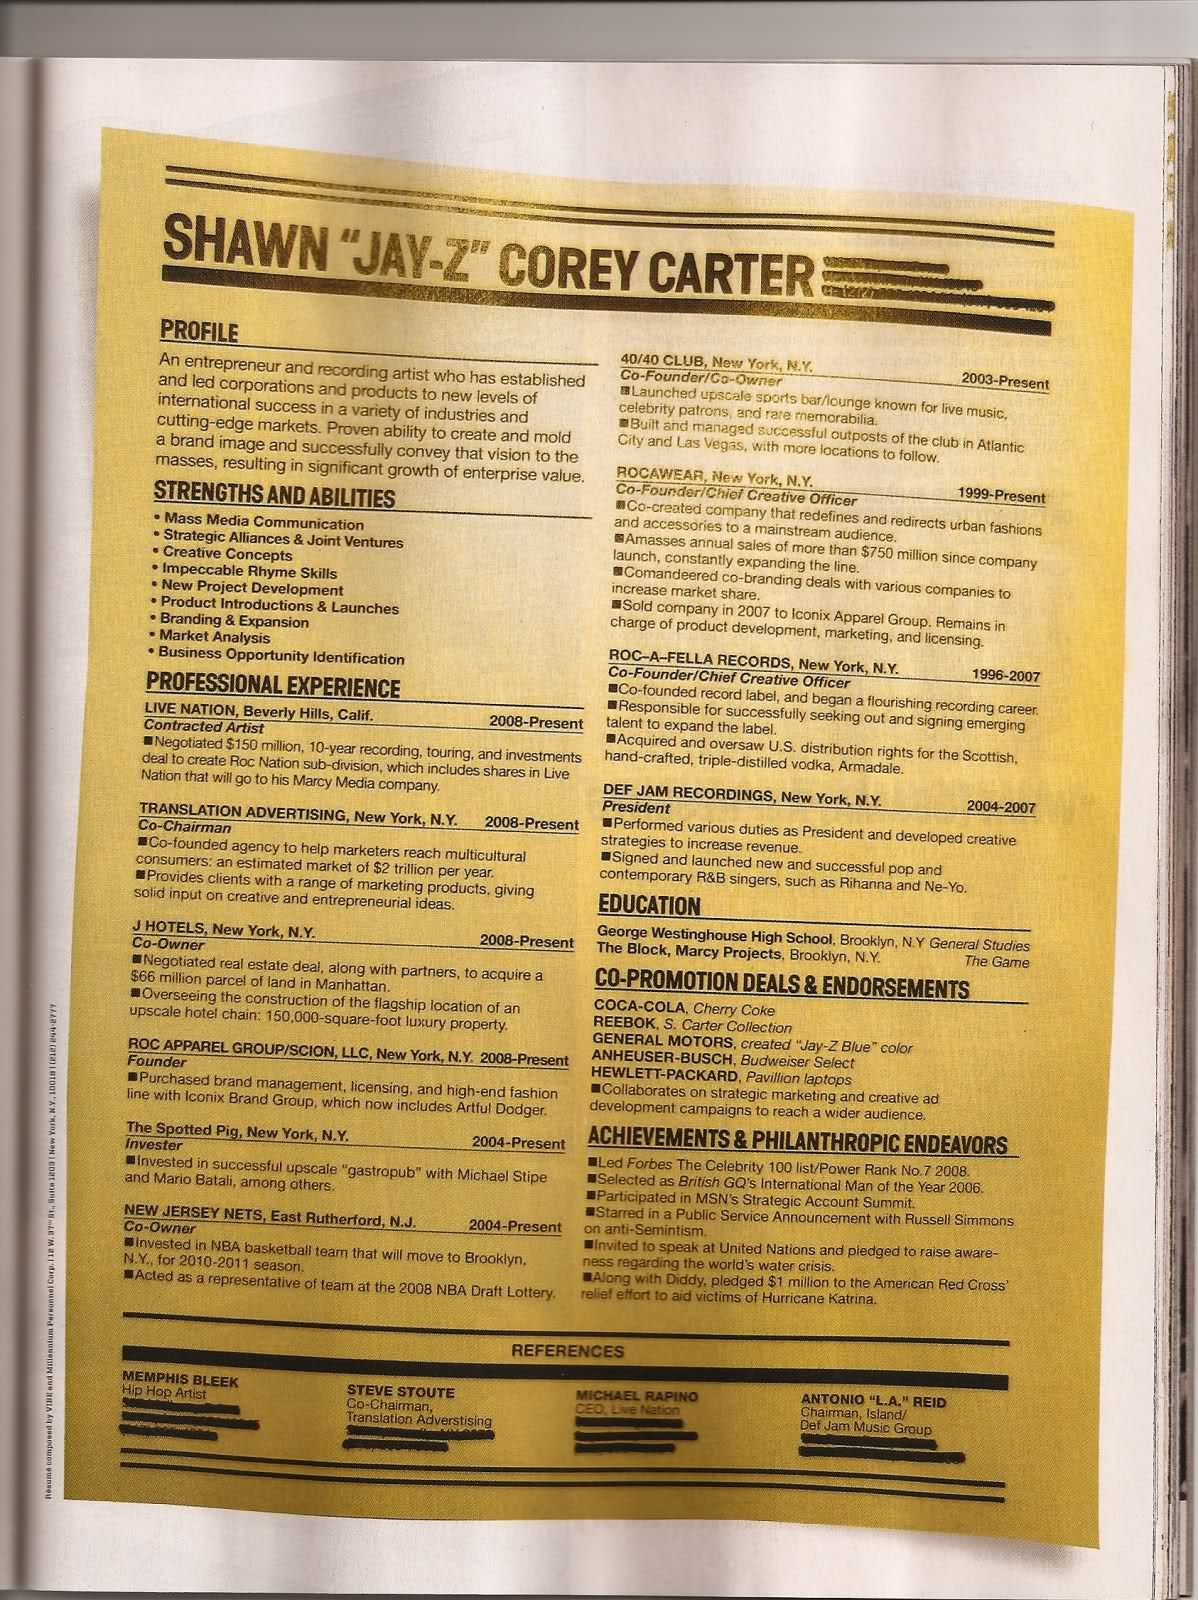 jay zs resume write best resume ever - The Best Resume Format Ever